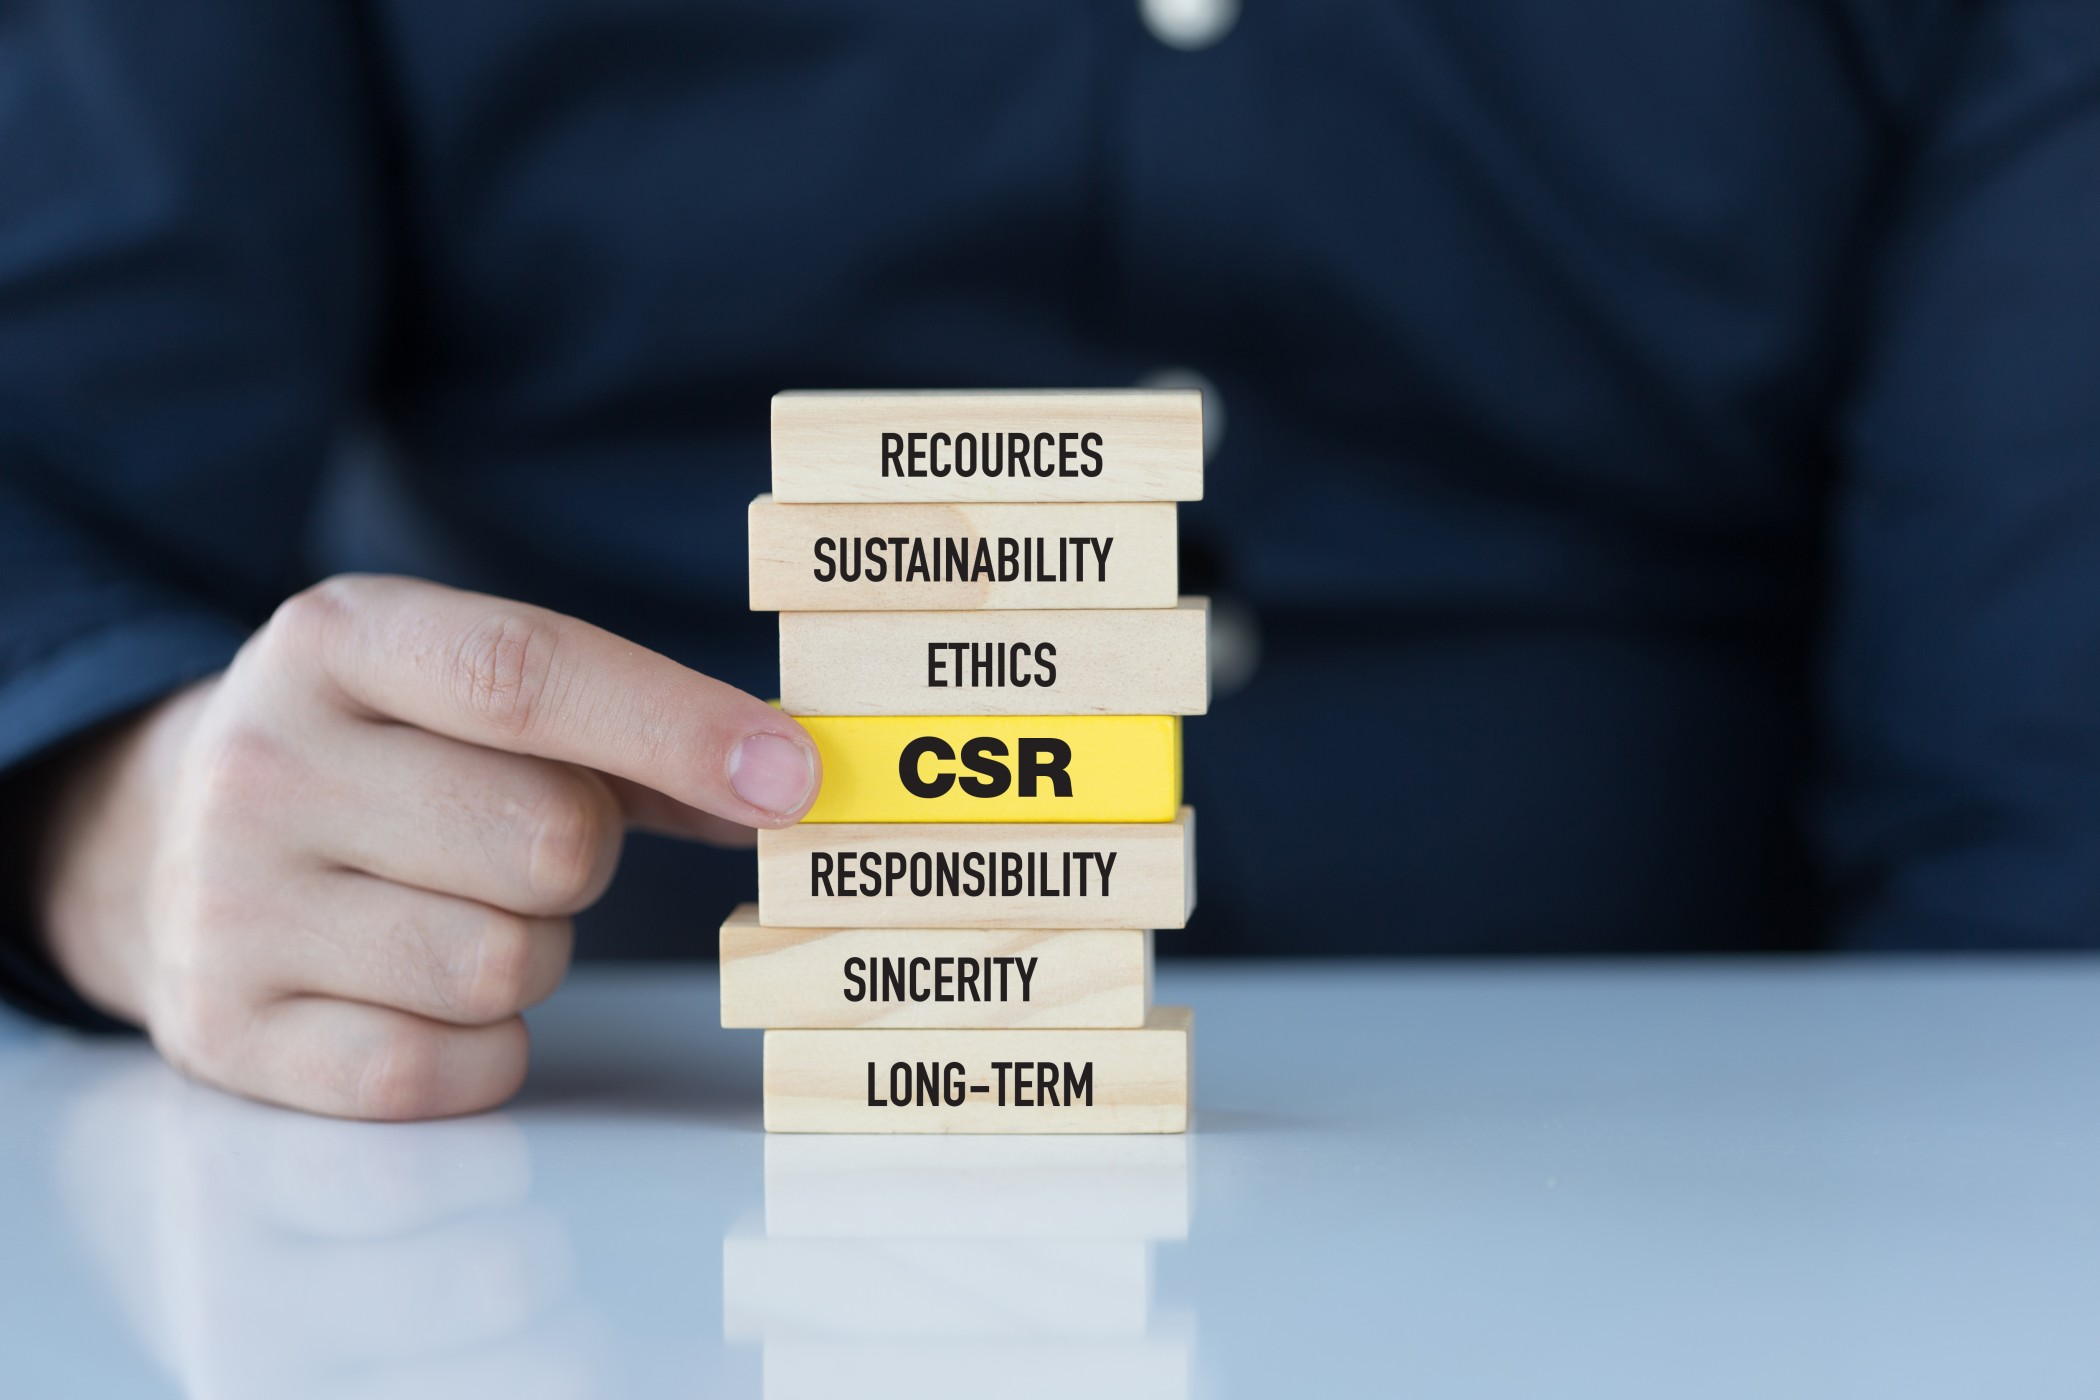 Corporate Social Responsibility Concept with Related Keywords on Wooden Blocks